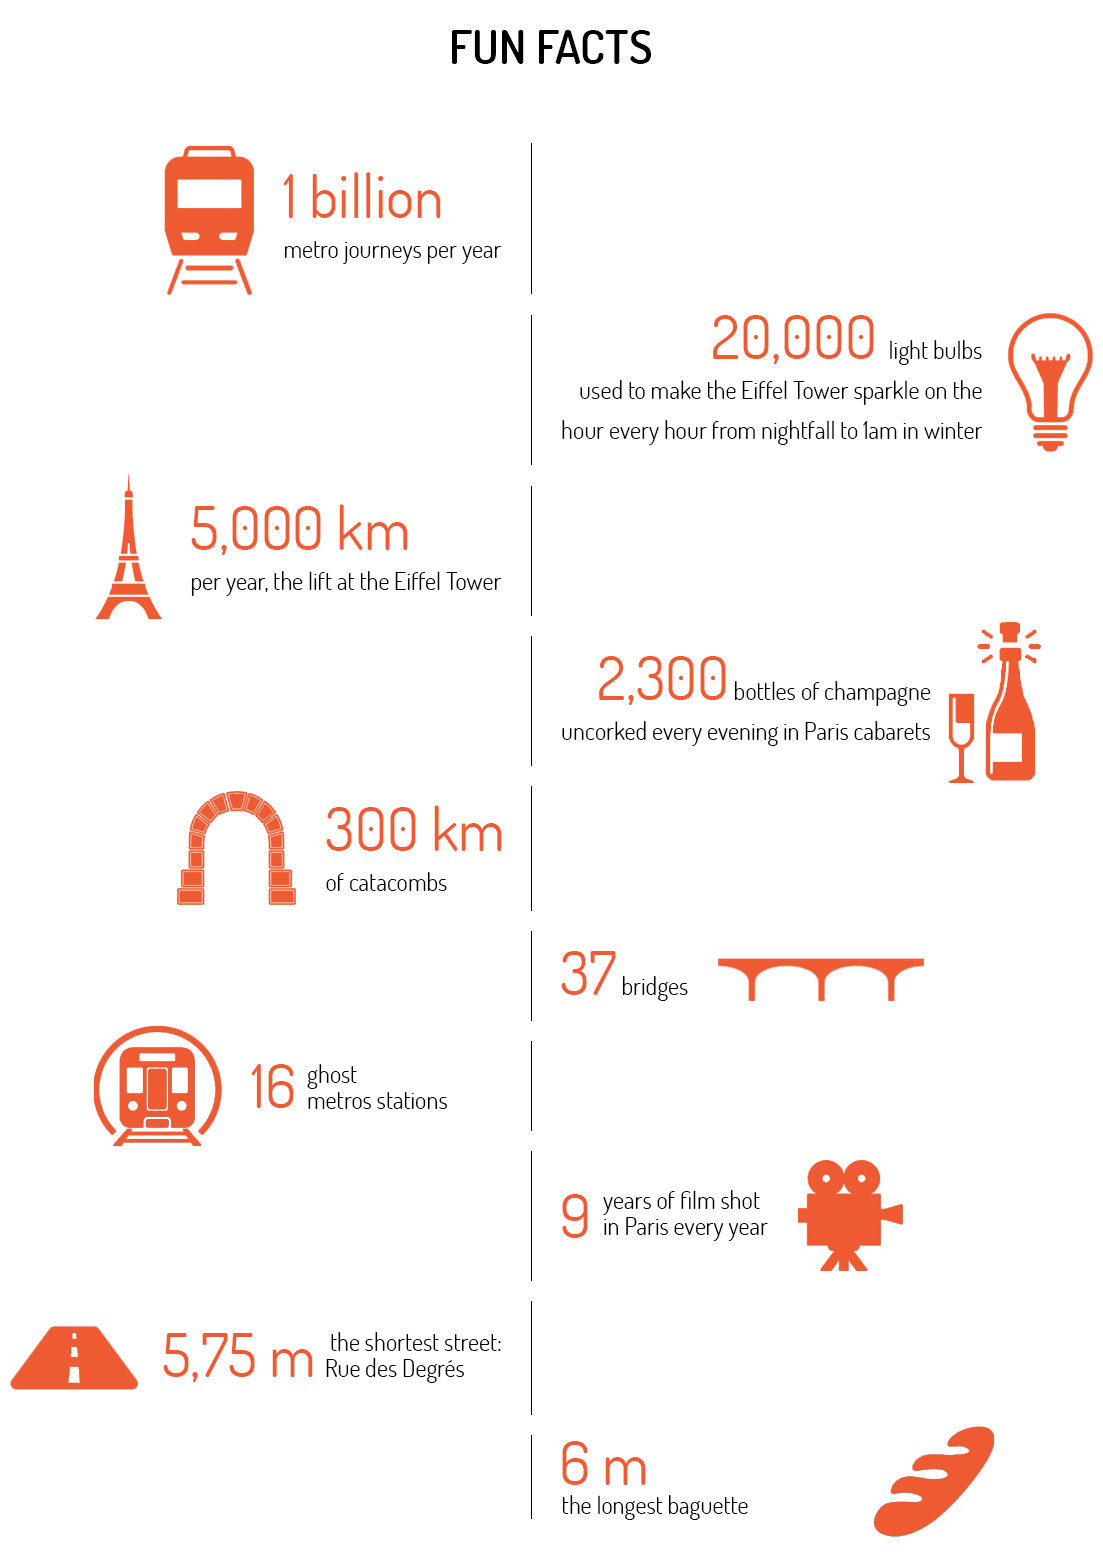 Fun facts about Paris